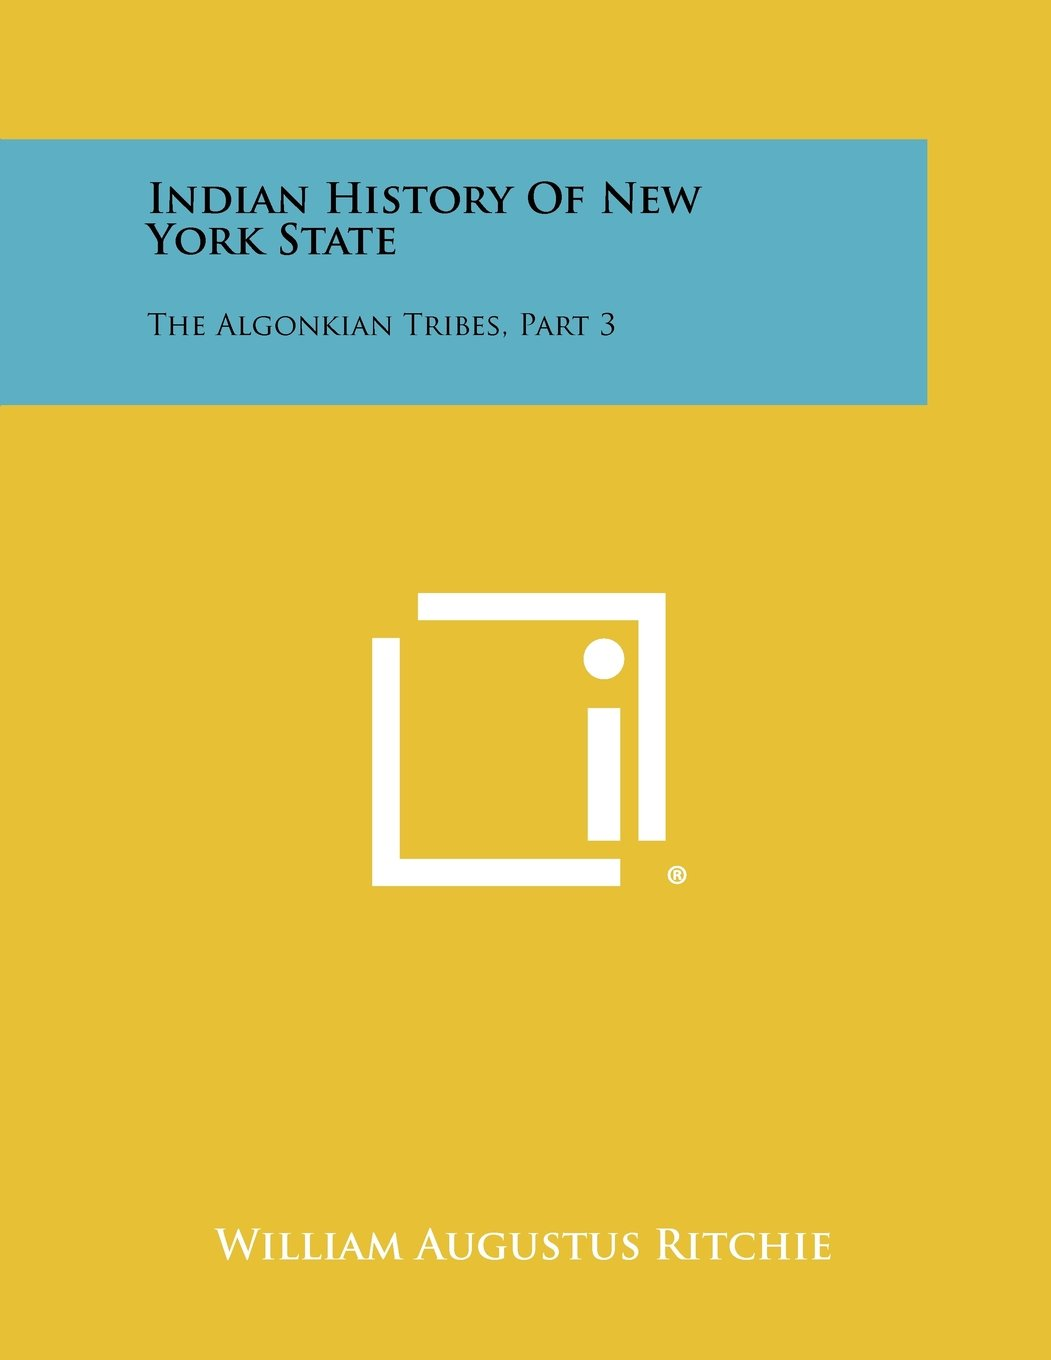 Indian History of New York State: The Algonkian Tribes, Part 3 ePub fb2 book